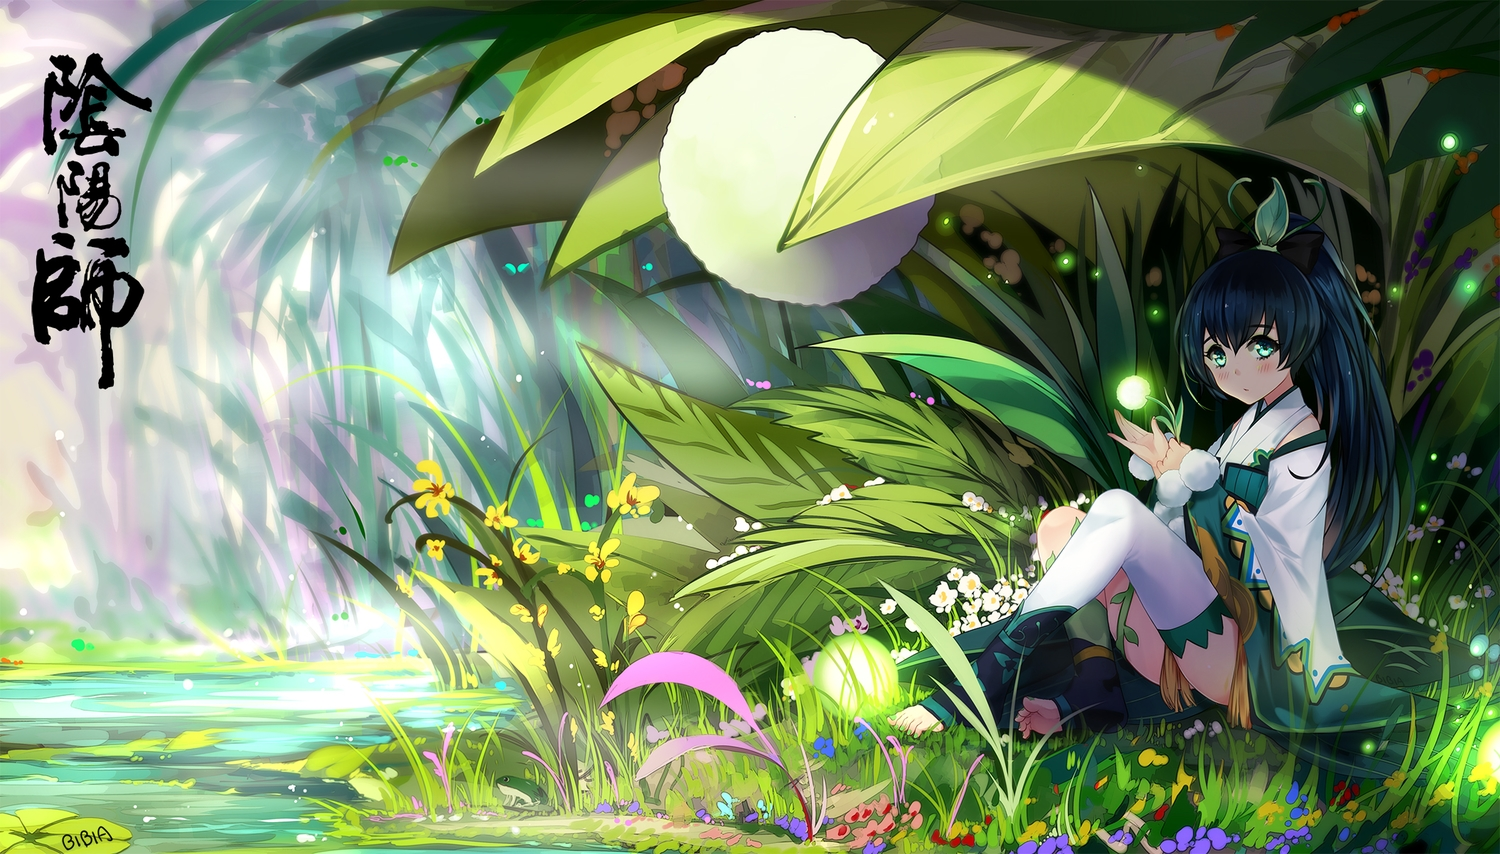 animal bba_biao black_hair blush flowers frog grass green_eyes long_hair signed water